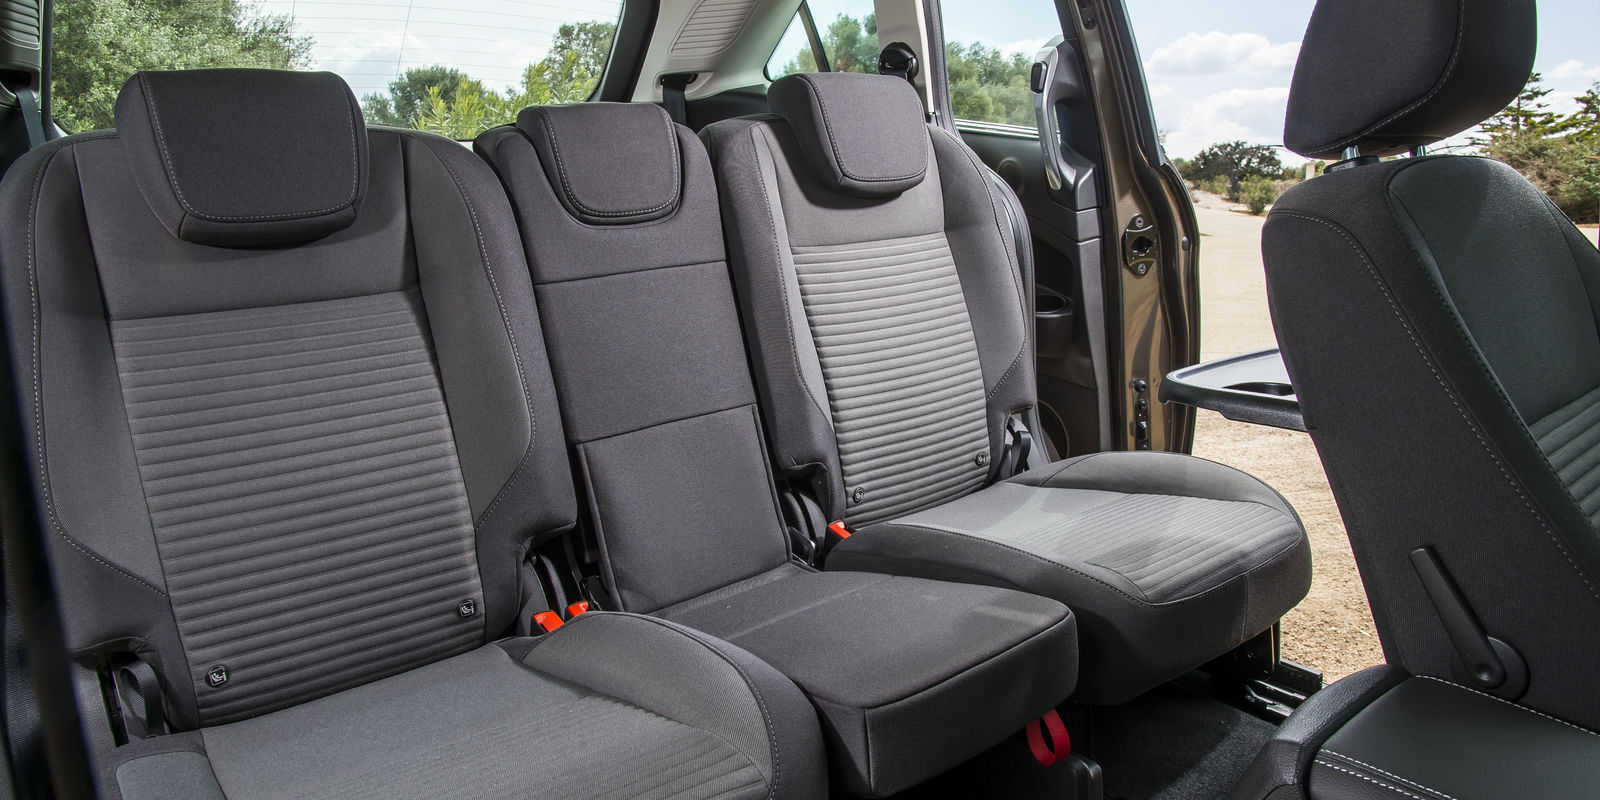 ford c max review impressive mpv is fun to drive and. Black Bedroom Furniture Sets. Home Design Ideas